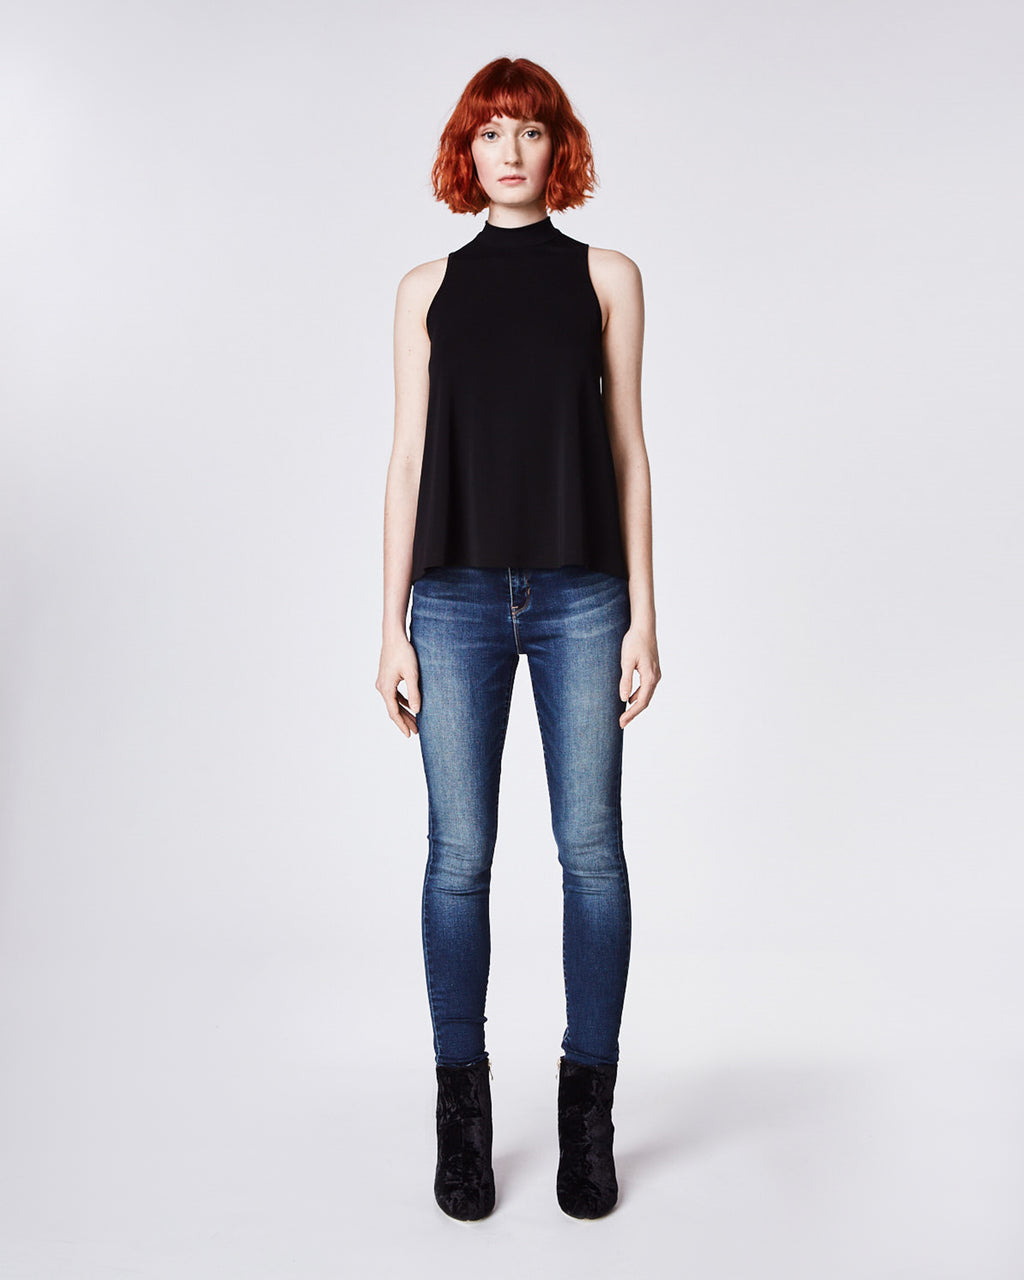 AR10065 - STRETCHY MATTE JERSEY TURTLENECK TOP - tops - shirts - In a soft and stretchy jersey fabric, this basic tank is perfect for year round wear. Pair with jeans and blazer for a simple wear to work look. Finished with a keyhole button for closure and unlined.